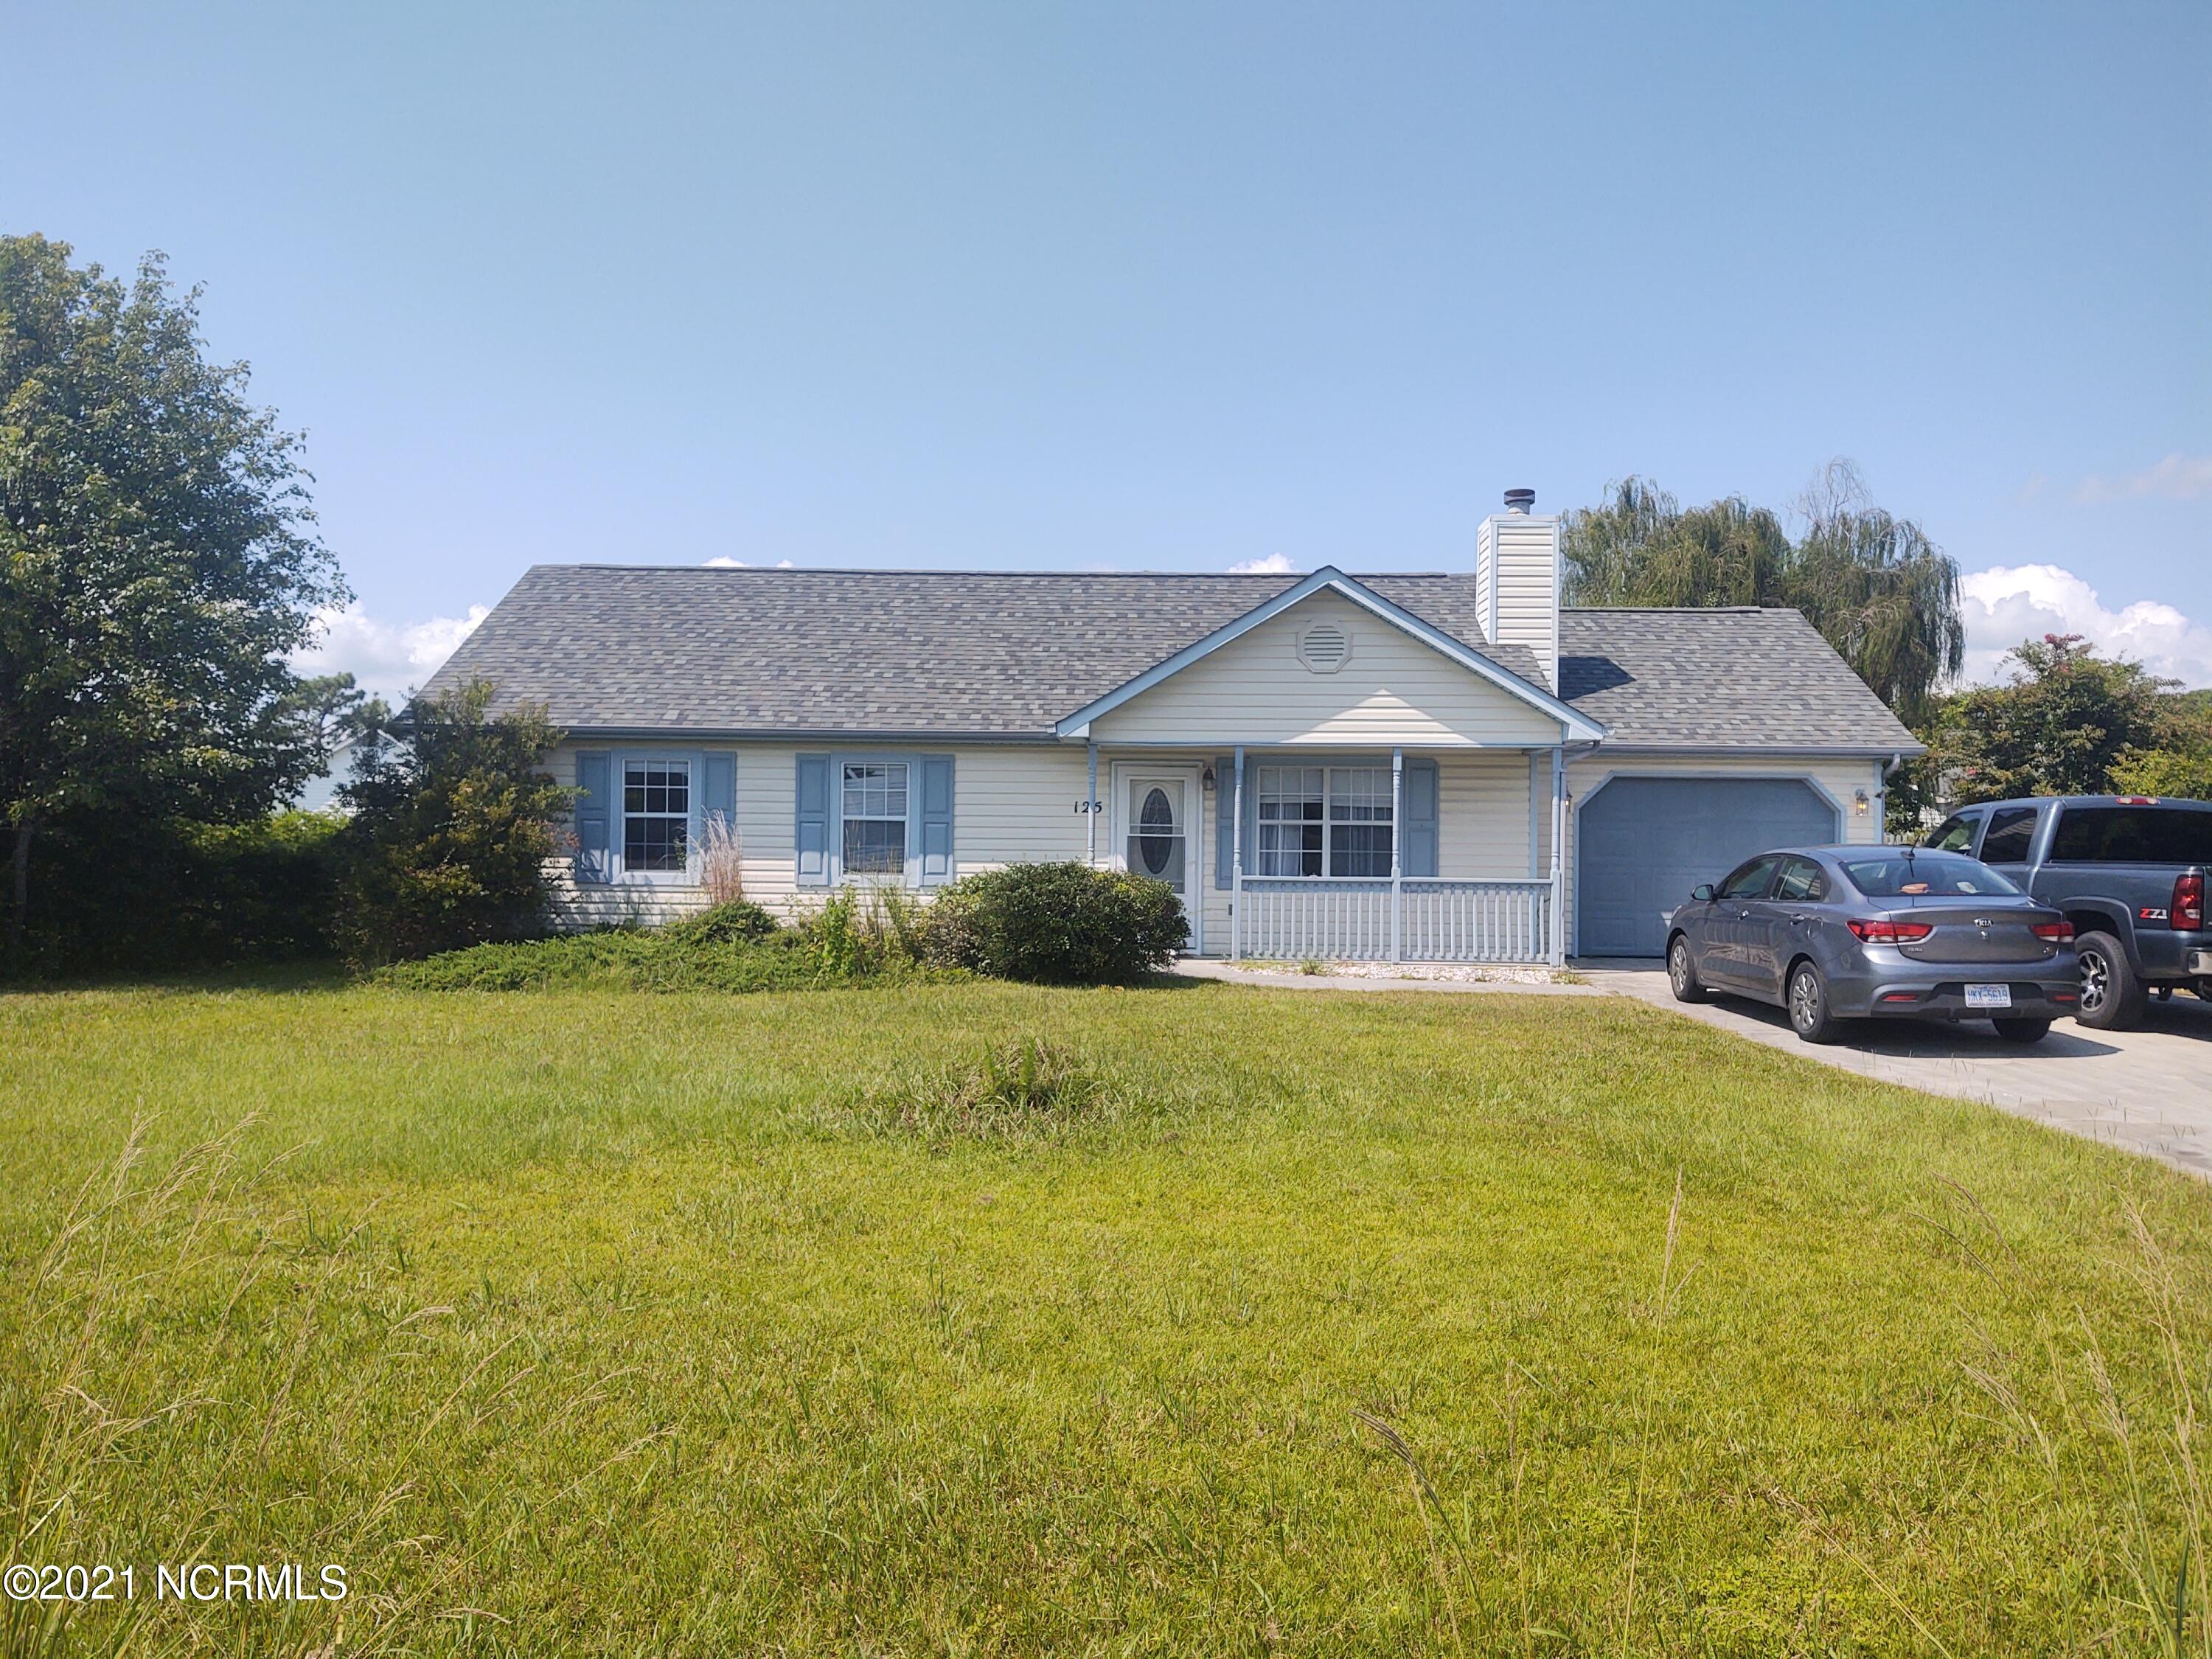 This very cute home has a vaulted ceiling in the living, new tile in the kitchen, modern stainless steel appliances, and a small swimming pool out back!  Located in Hubert, it's just a short hop to the east gate of Camp Lejeune, and just a few minutes to Jacksonville.  Schedule your showing today!